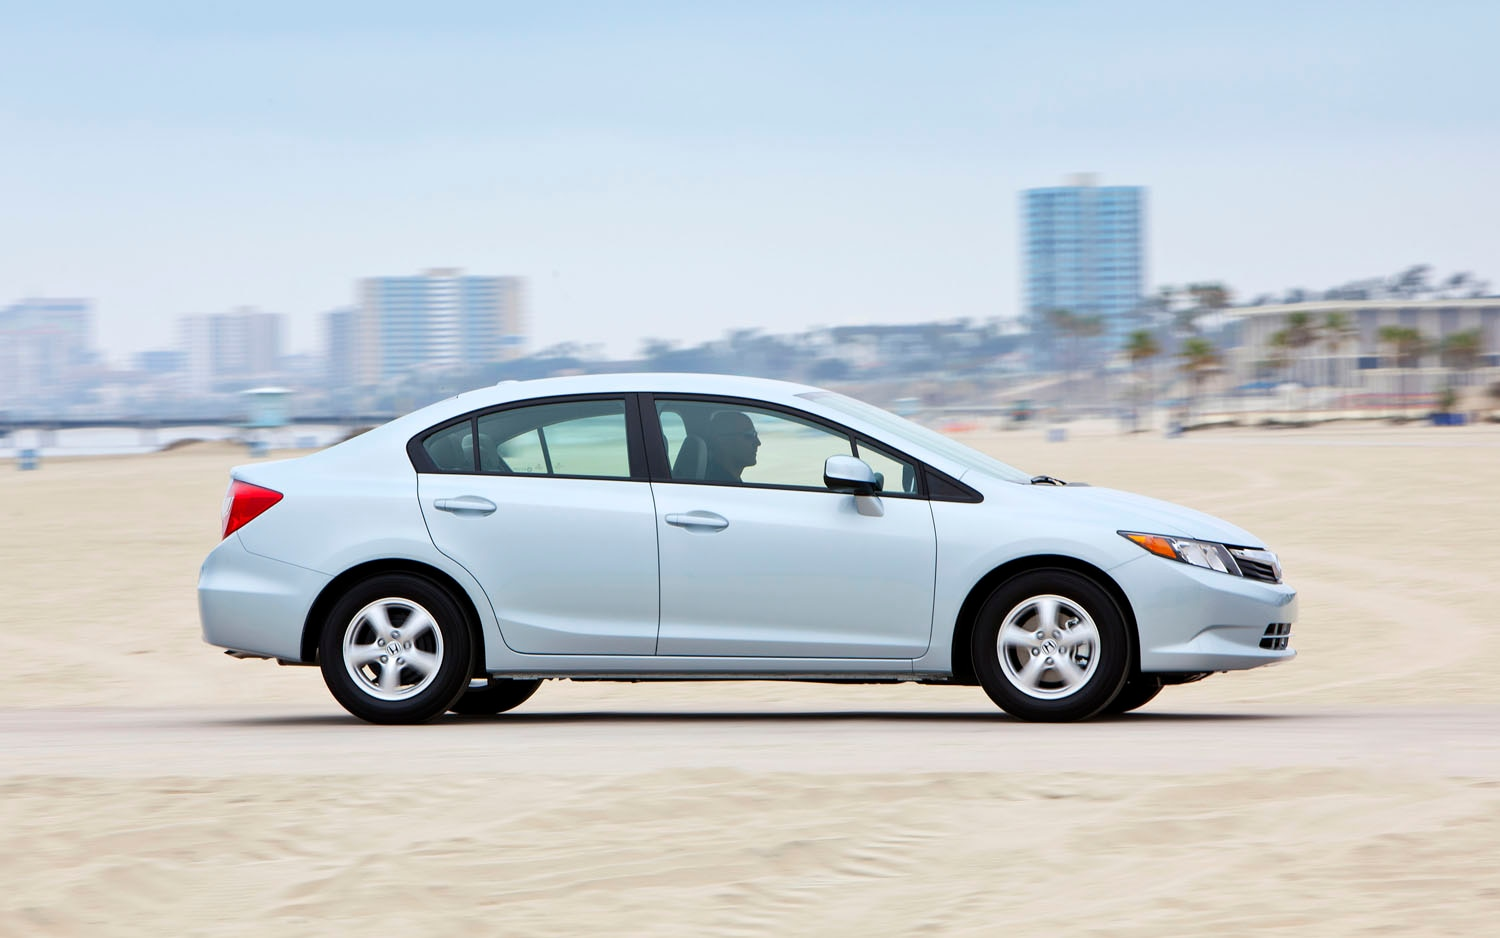 2012 honda civic natural gas goes on sale for 26 905 for Honda civic natural gas for sale